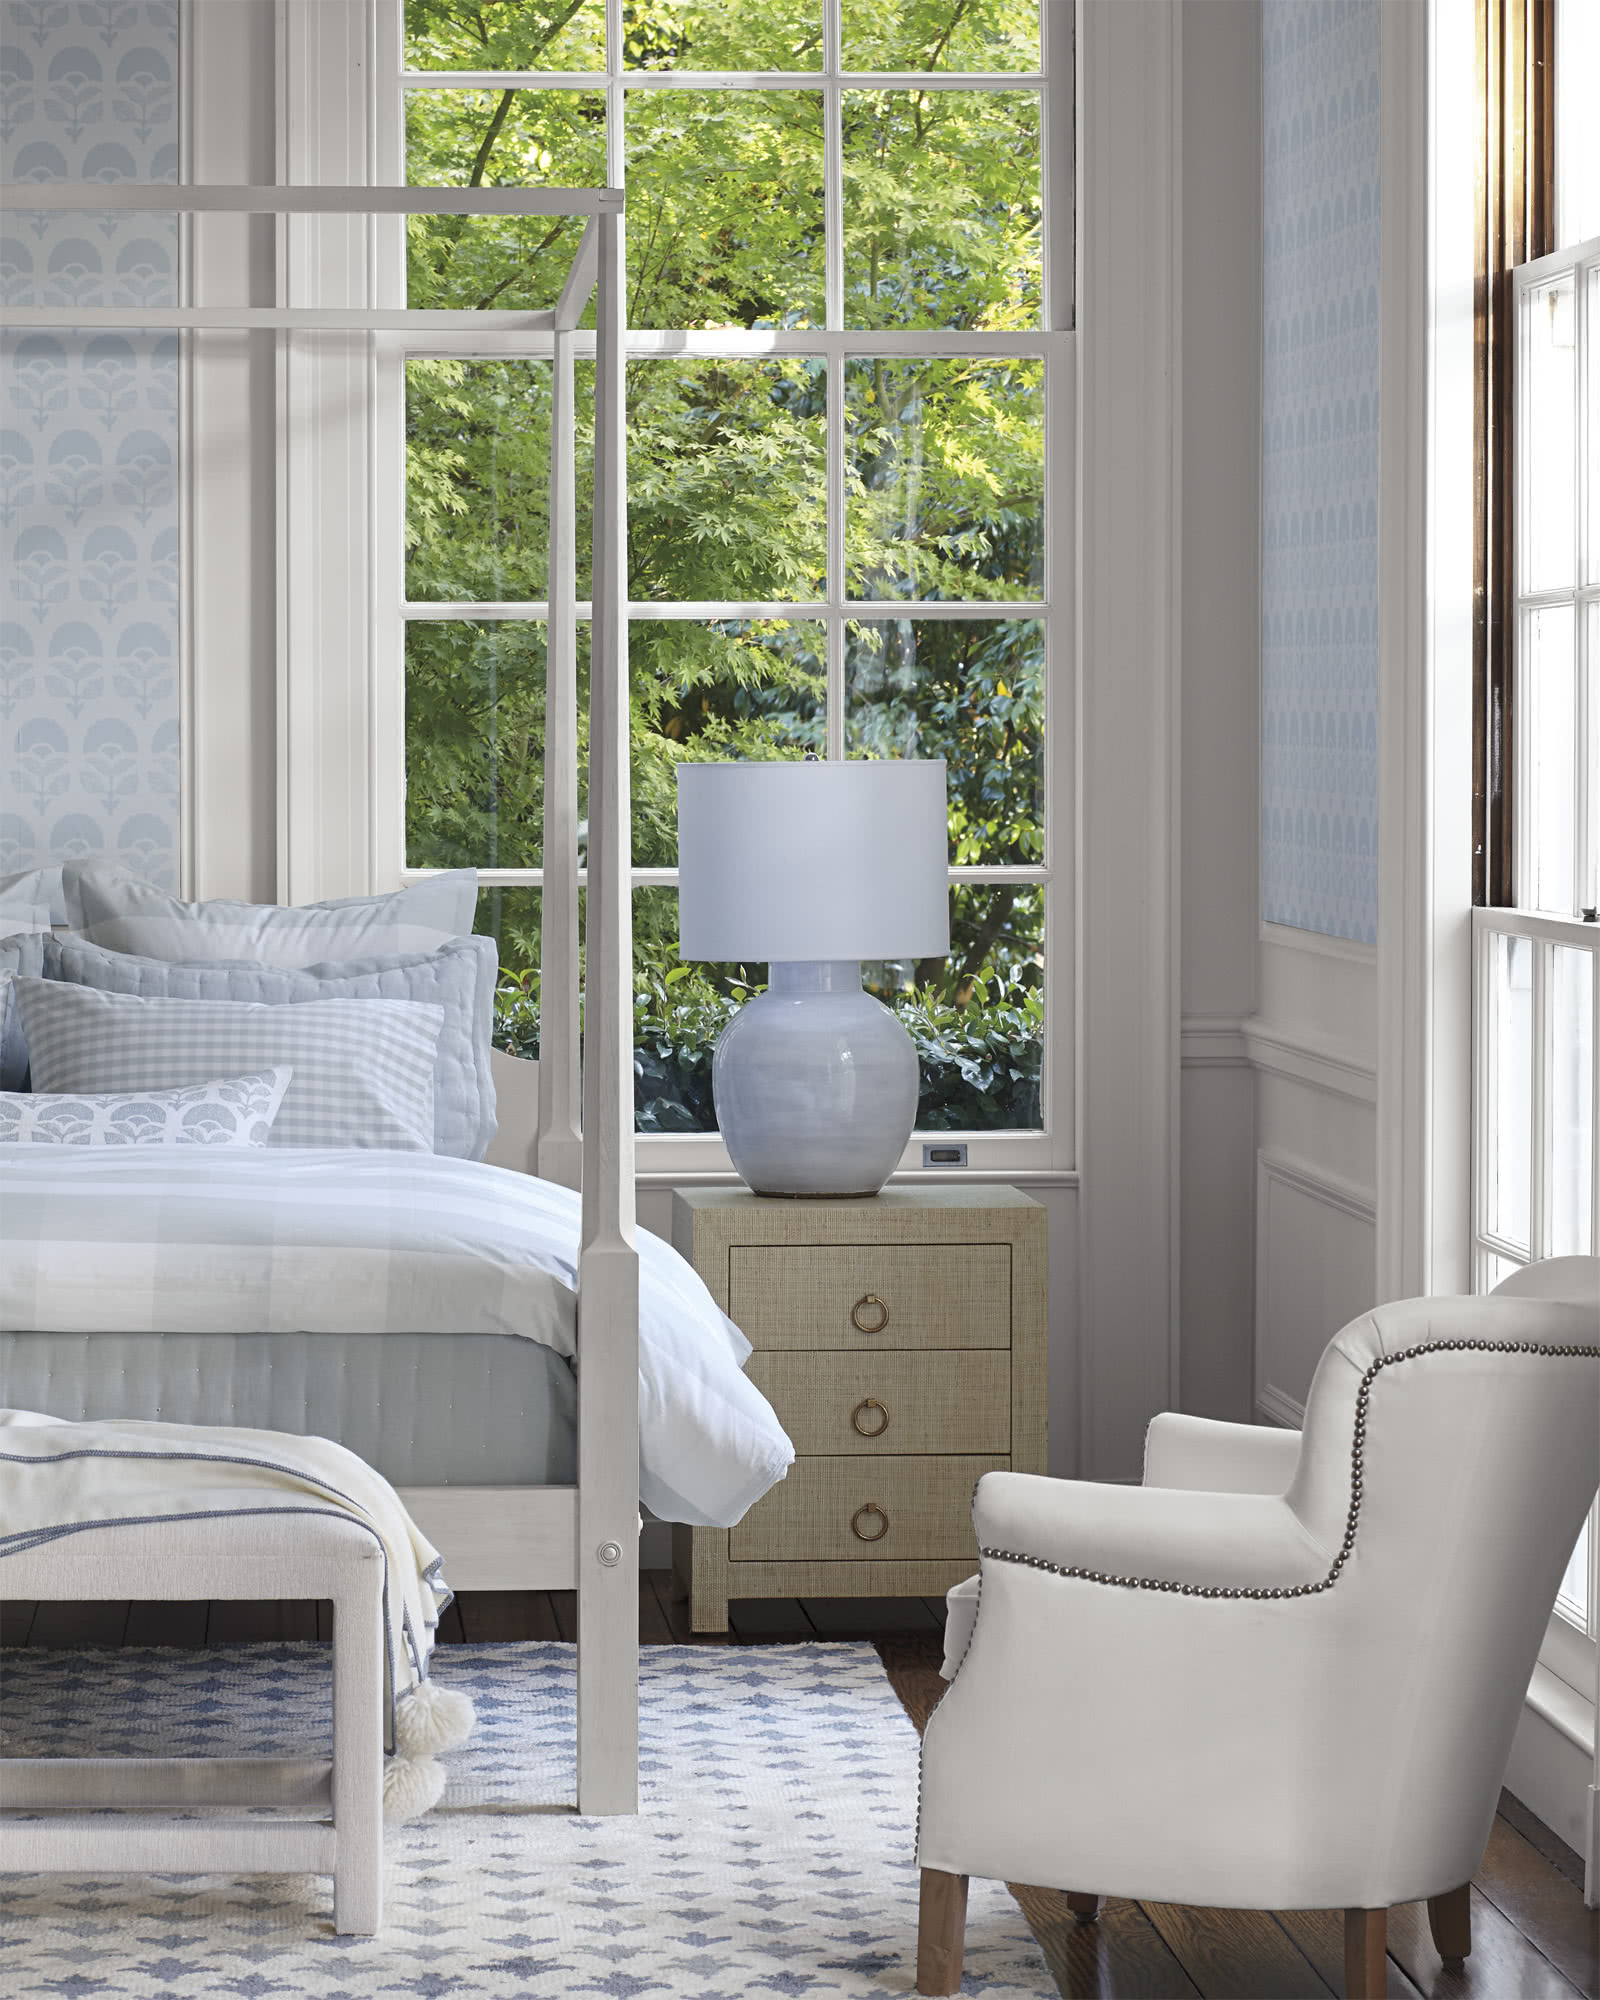 Romantic light blue and white classic coastal bedroom with Gingham Duvet Cover in light blue and white.